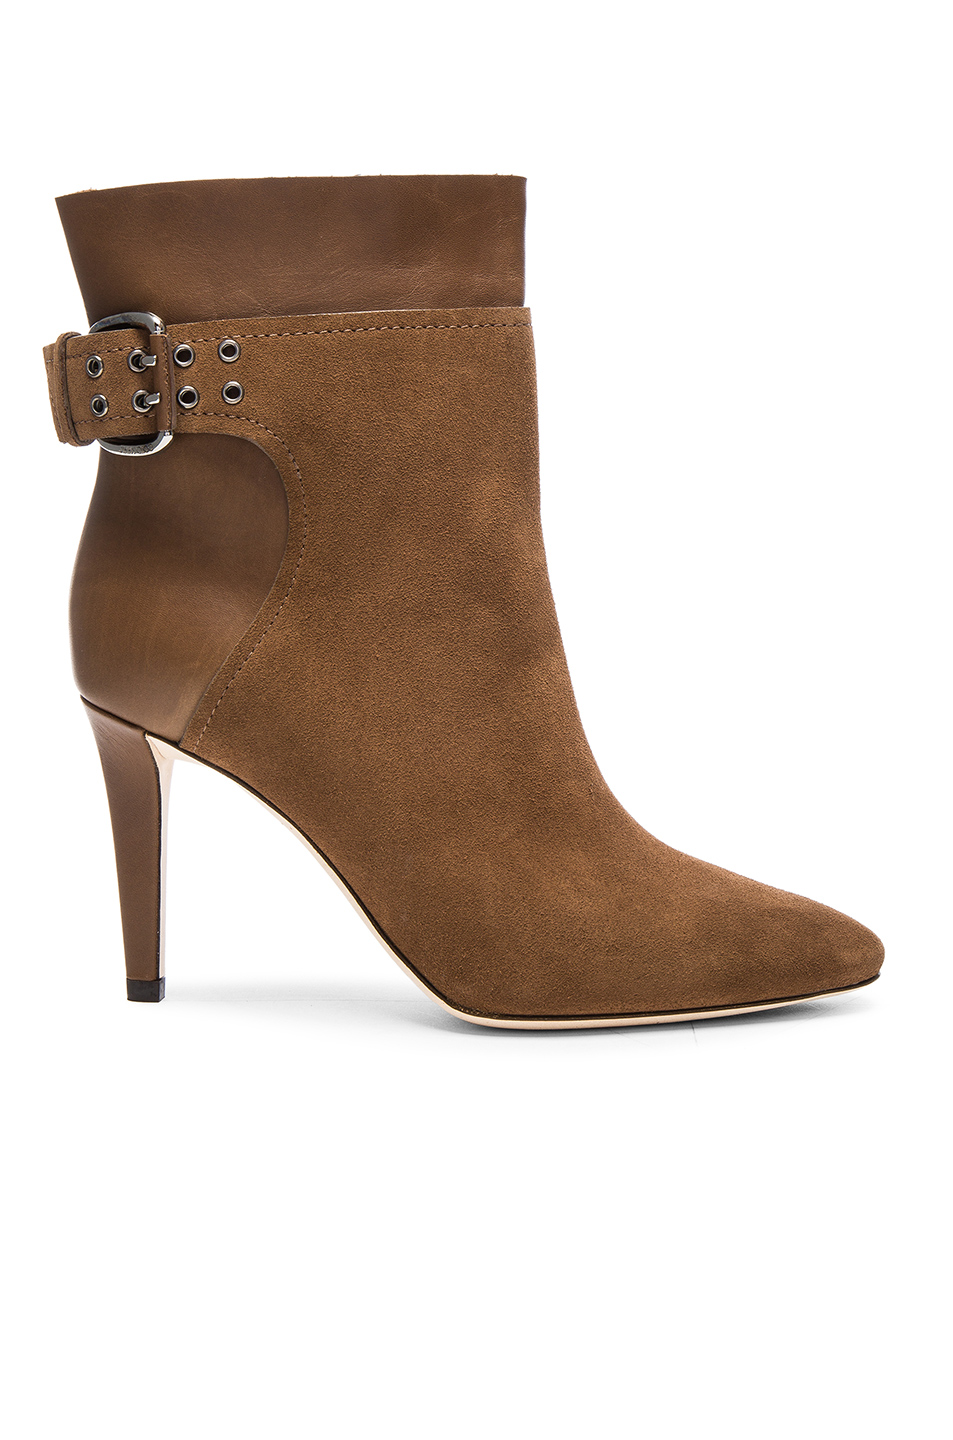 Jimmy Choo Suede Major Booties in Brown